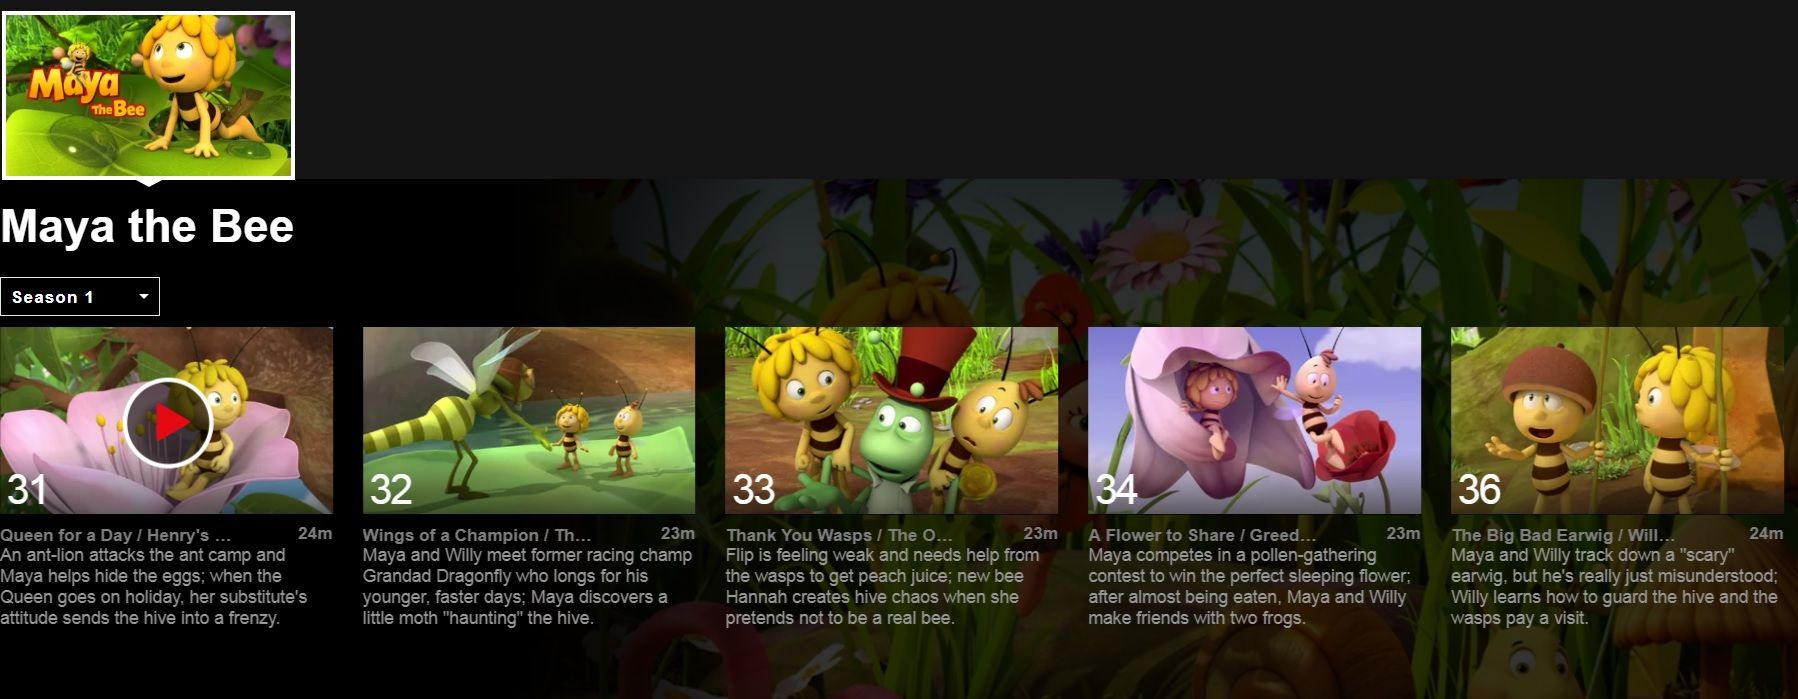 Netflix's Maya the Bee episode containing penis drawing